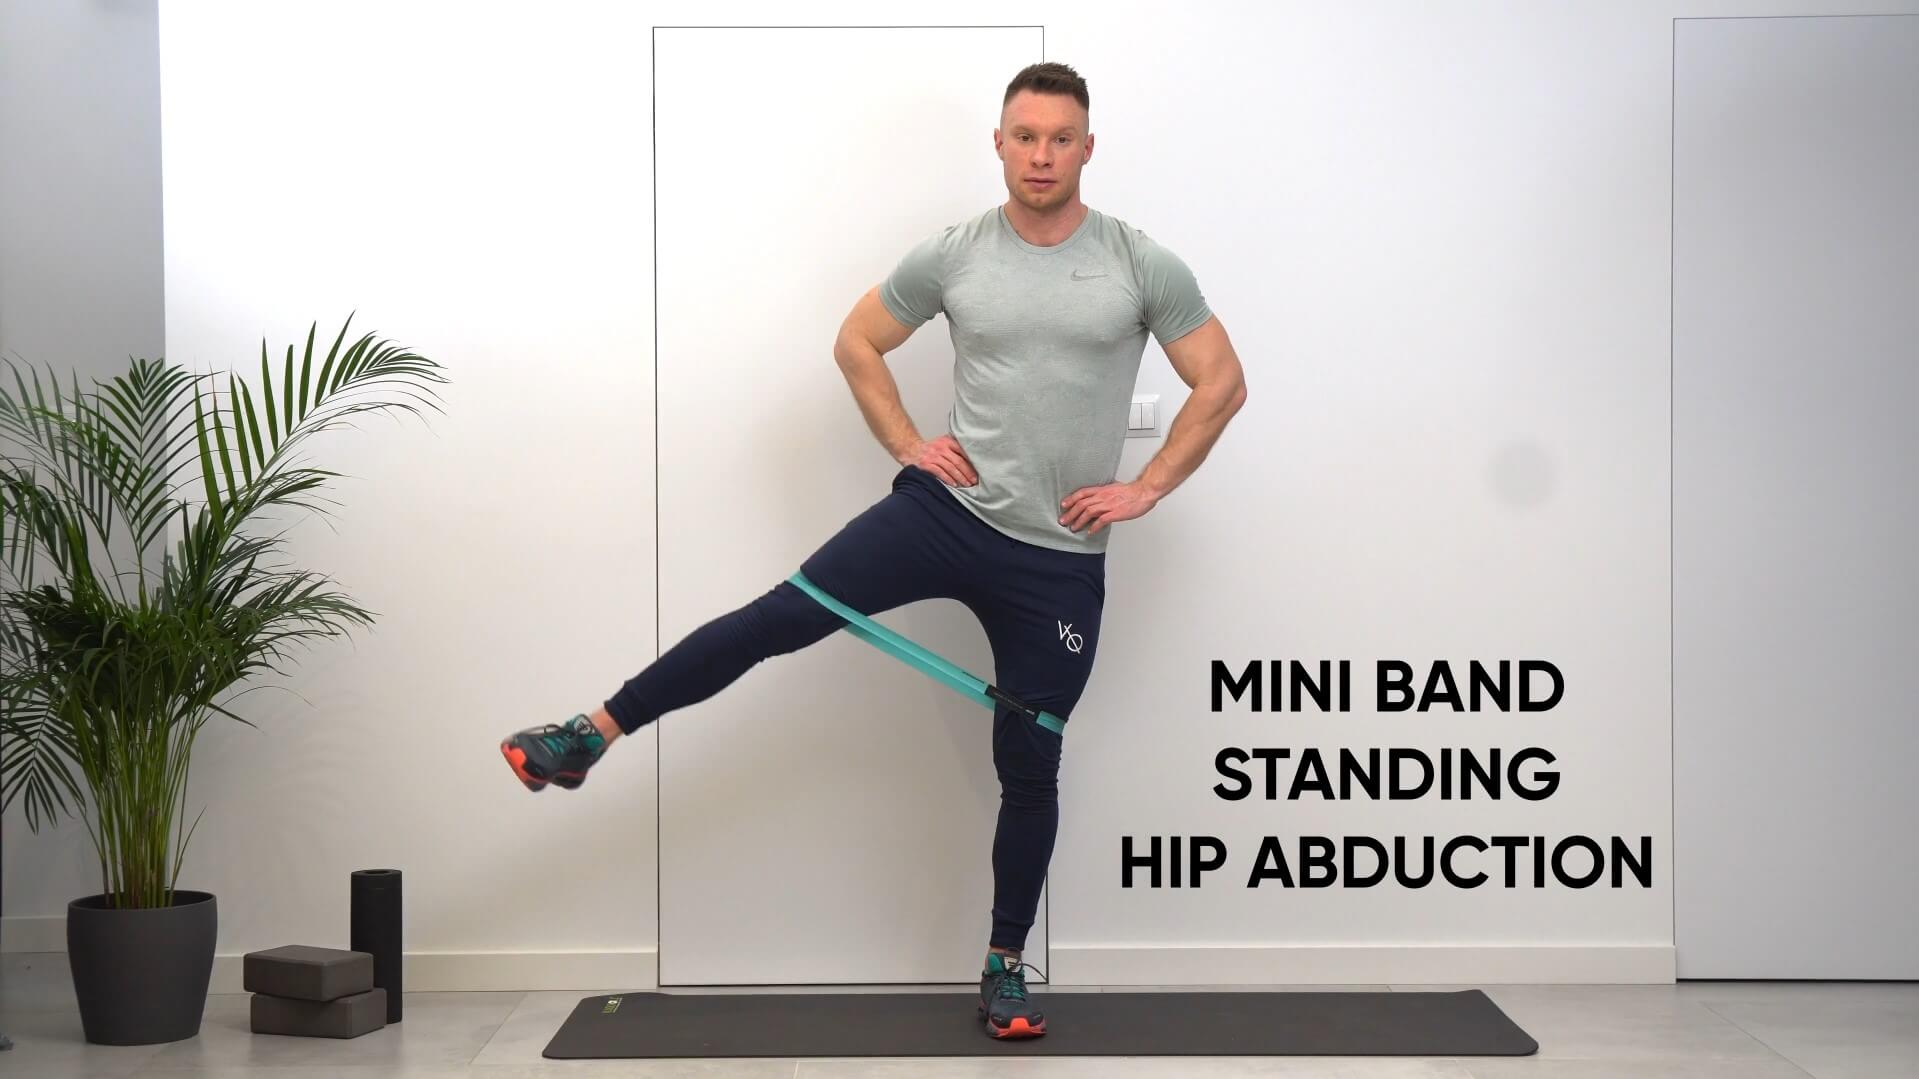 Mini band standing hip abduction